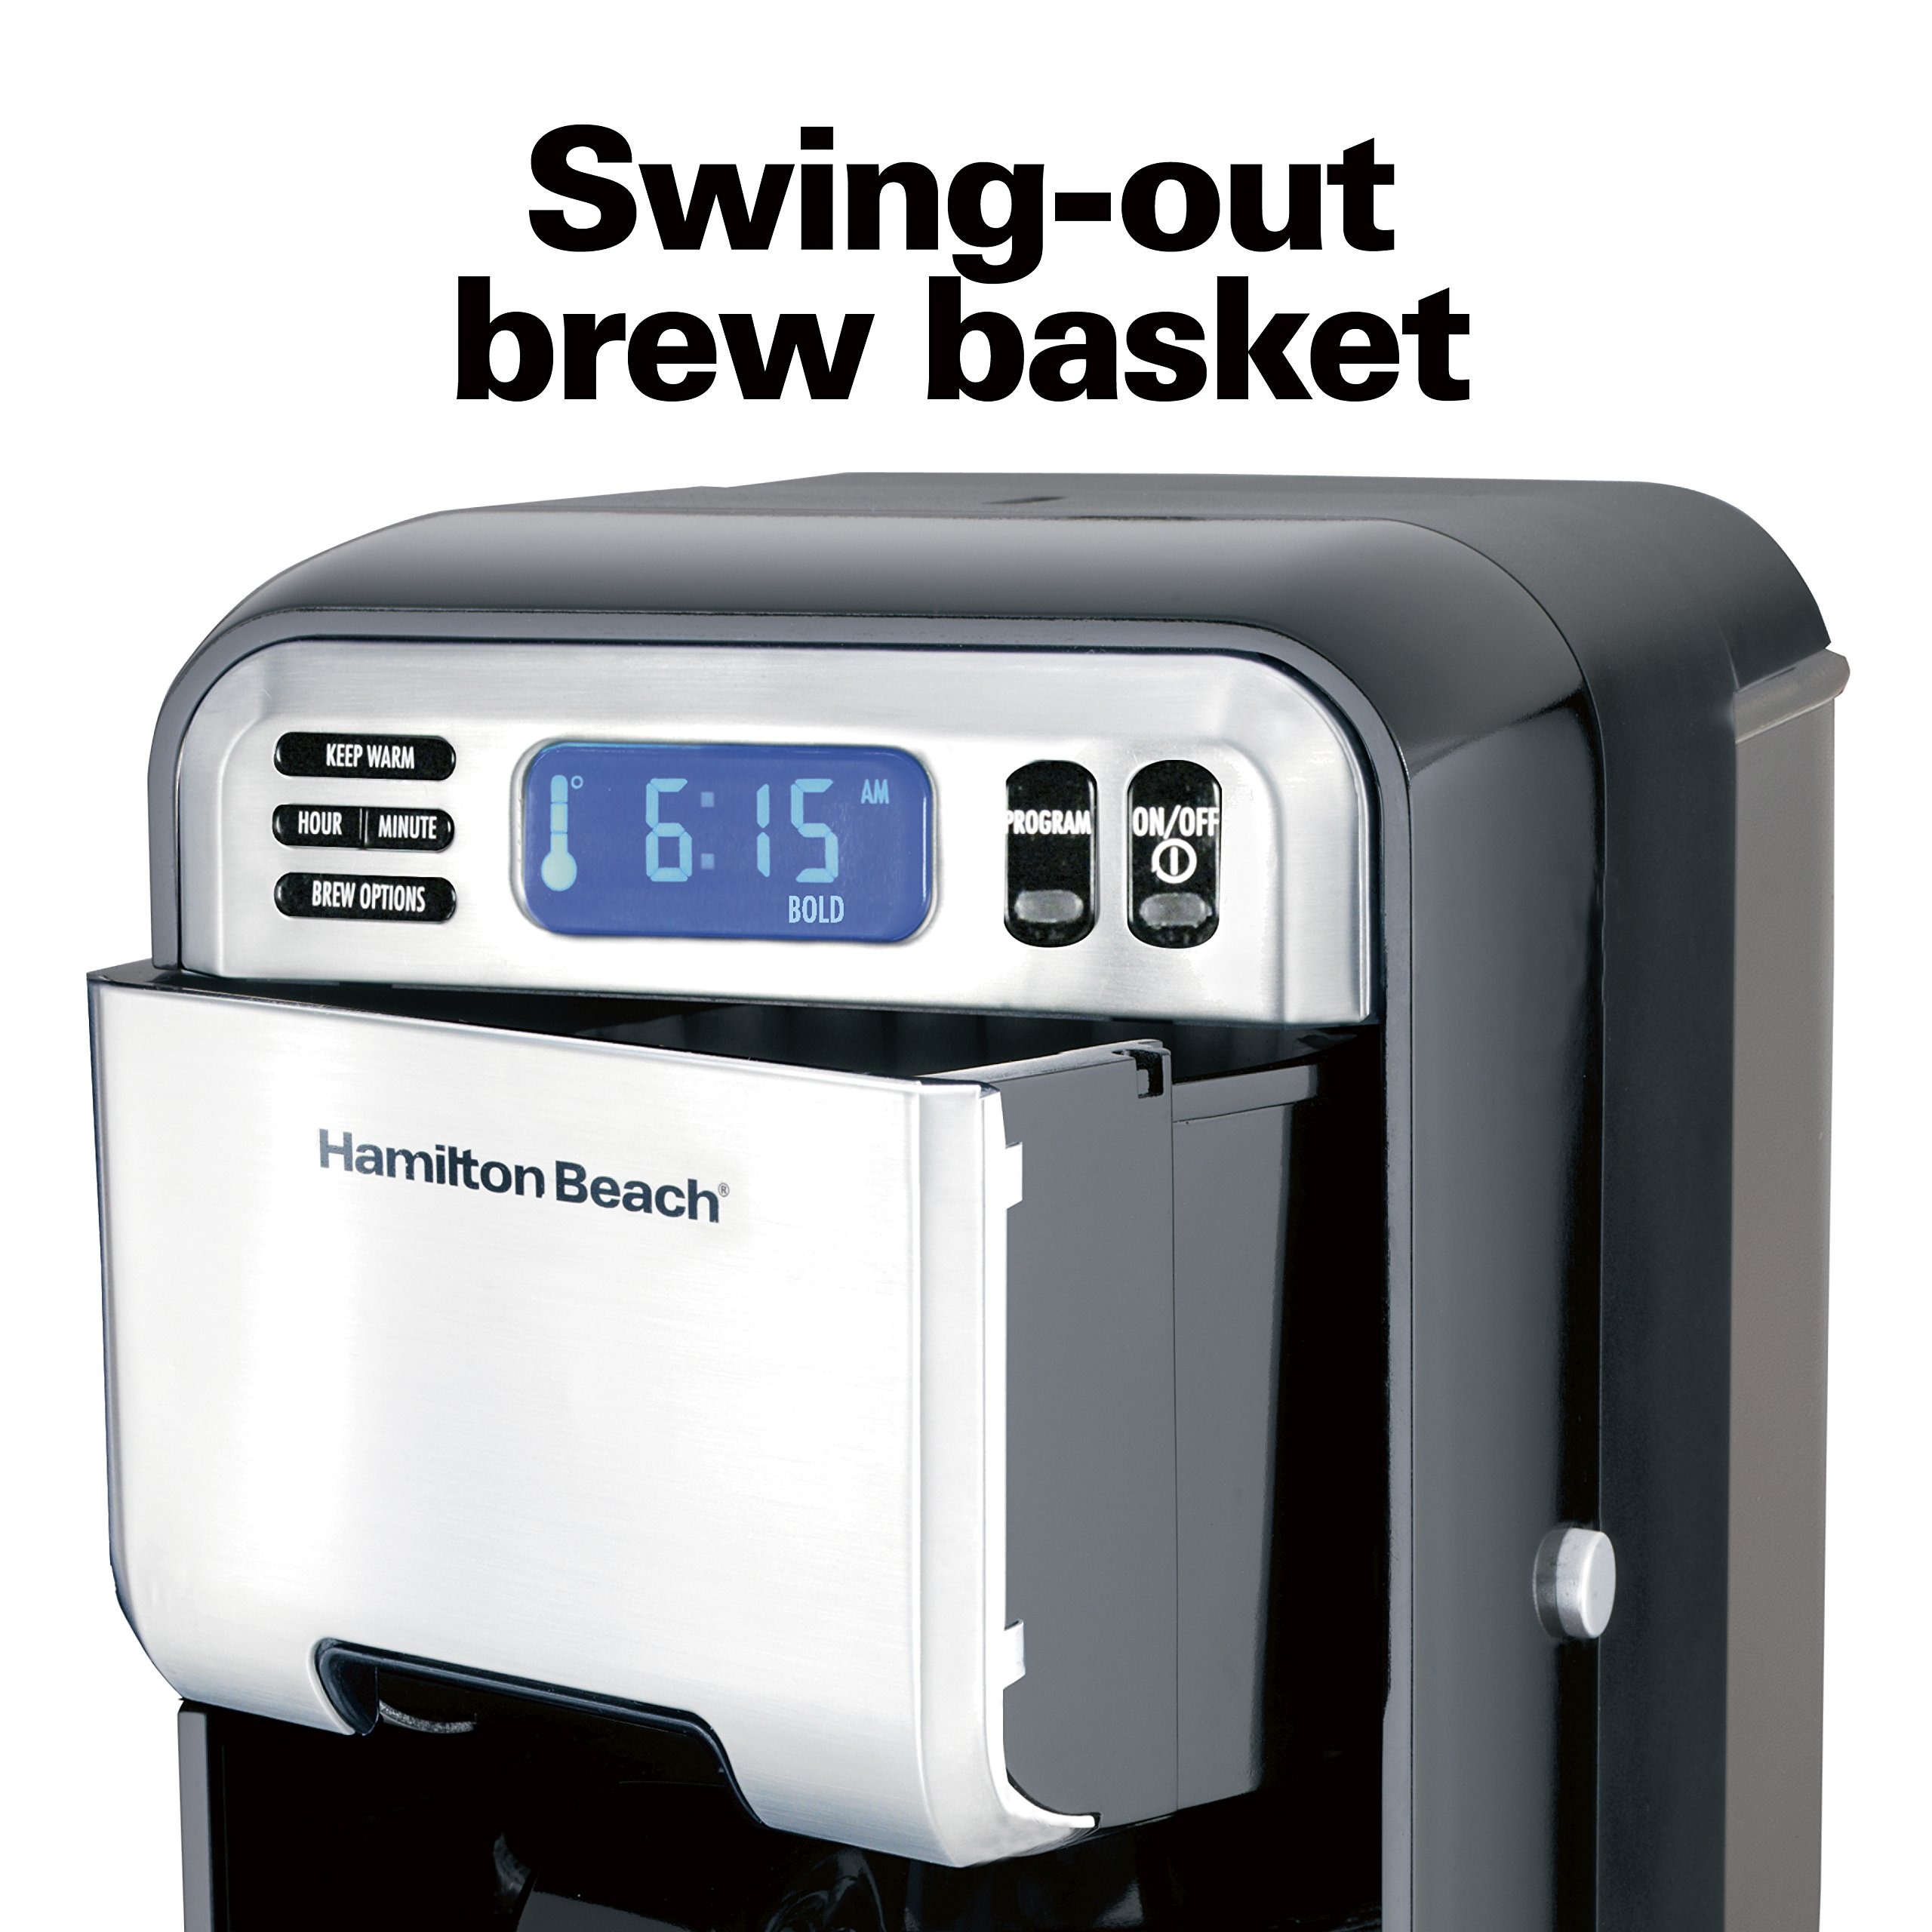 Hamilton Beach (46205) Coffee Maker, Programmable with 12 Cup Capacity, Stainless Steel by Hamilton Beach (Image #6)